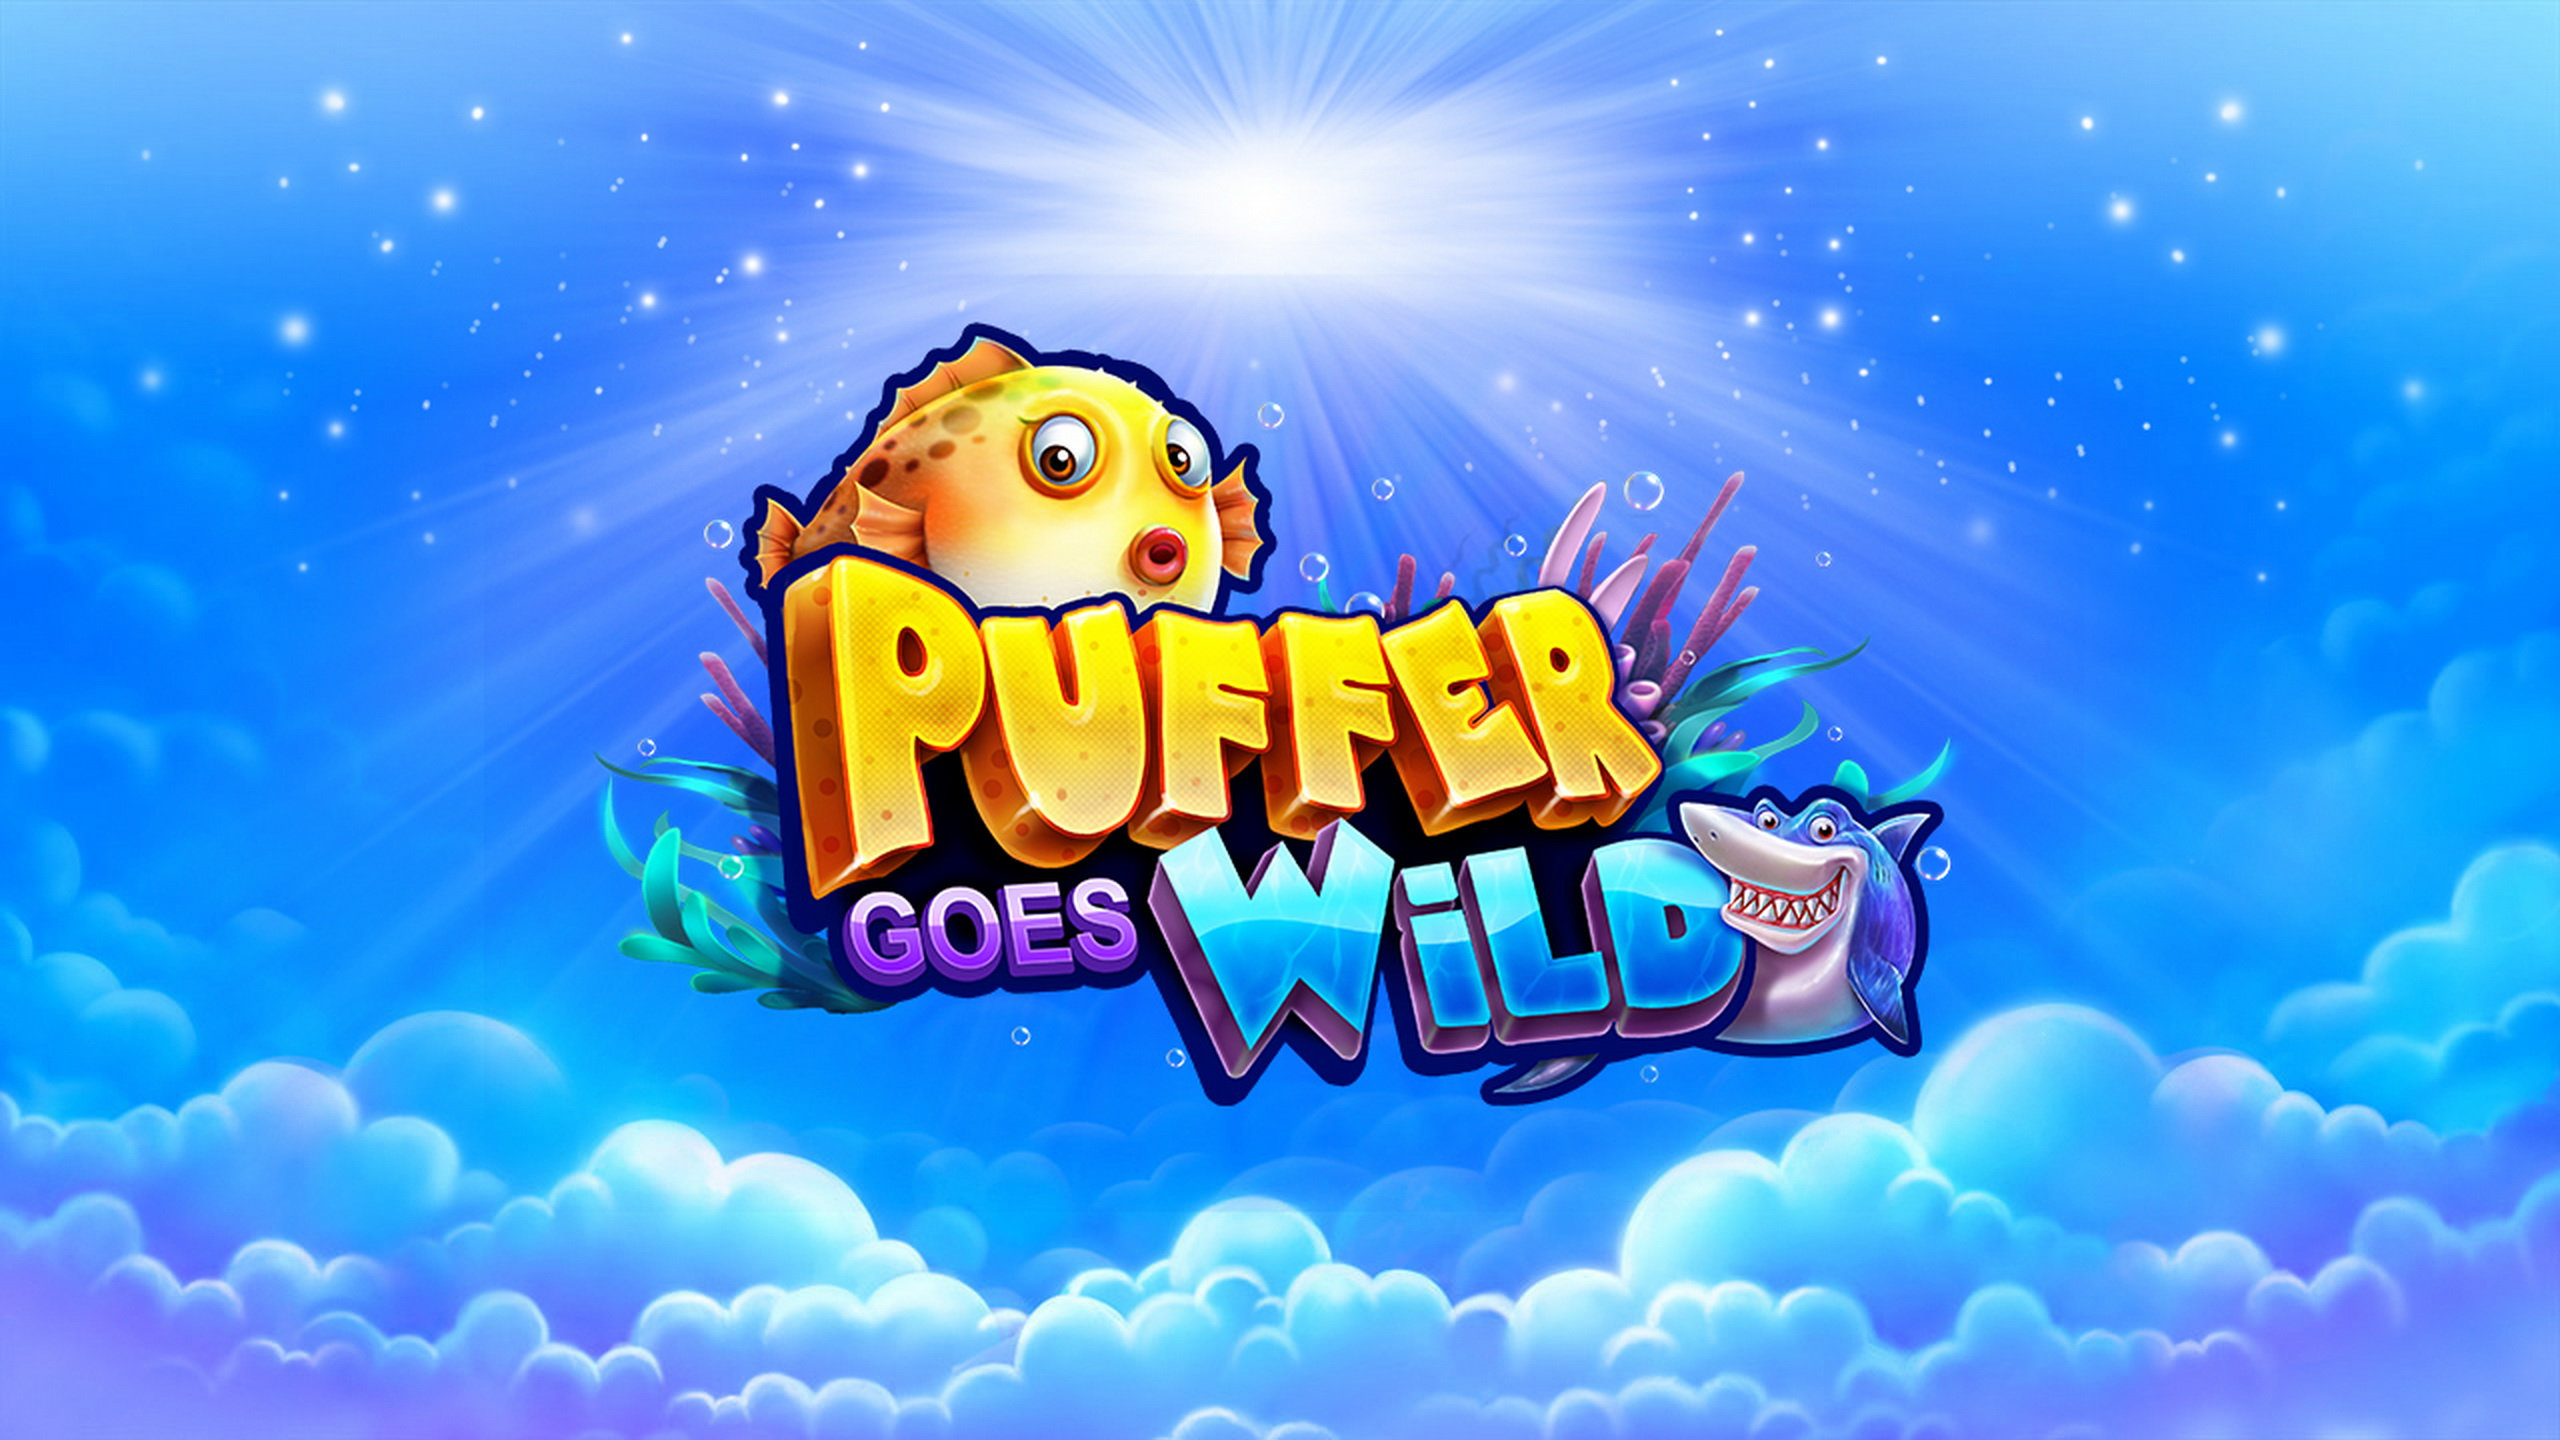 The Puffer Goes WIld Online Slot Demo Game by Plank Gaming